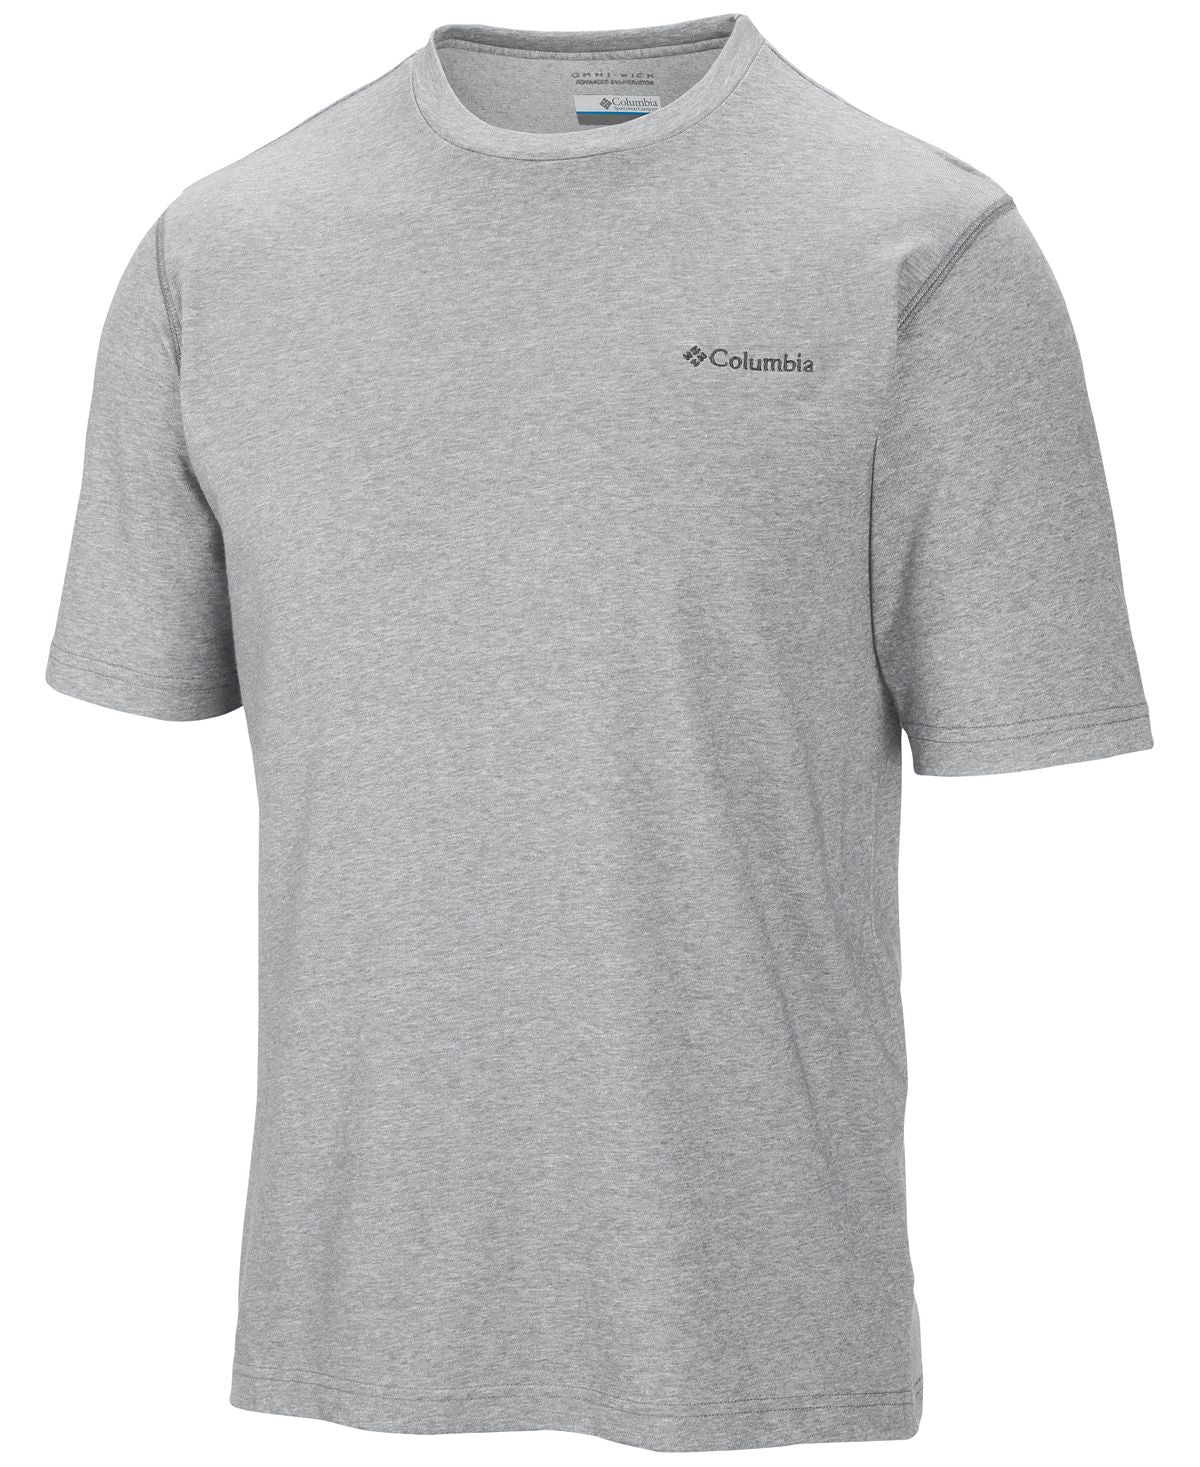 Columbia Thistletown Technical T-shirt